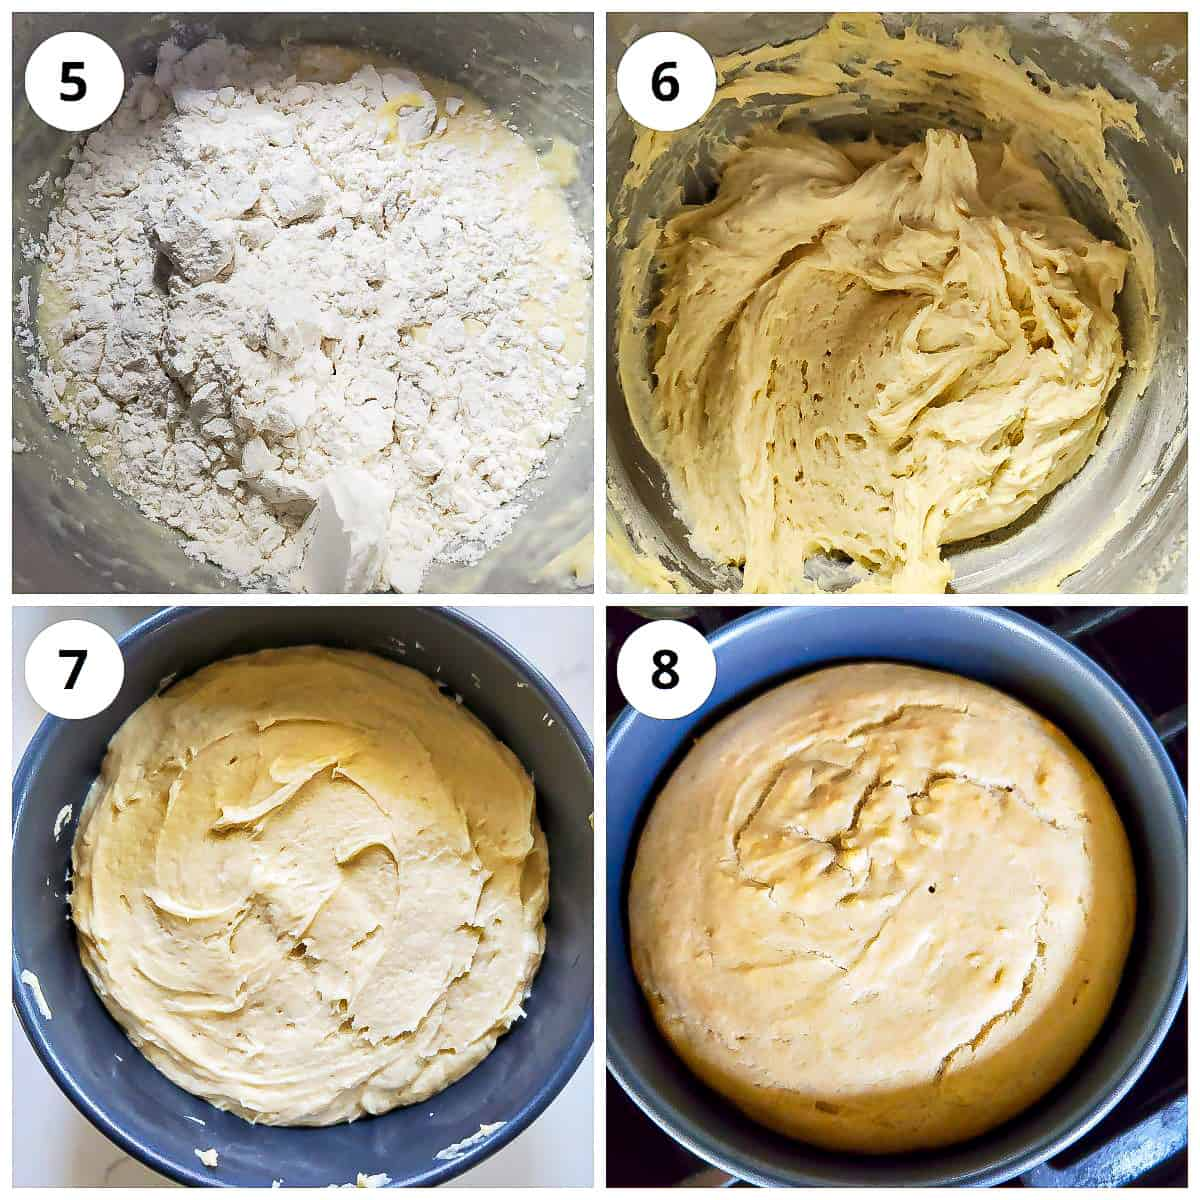 Steps for adding dry ingredients and baking vanilla cake